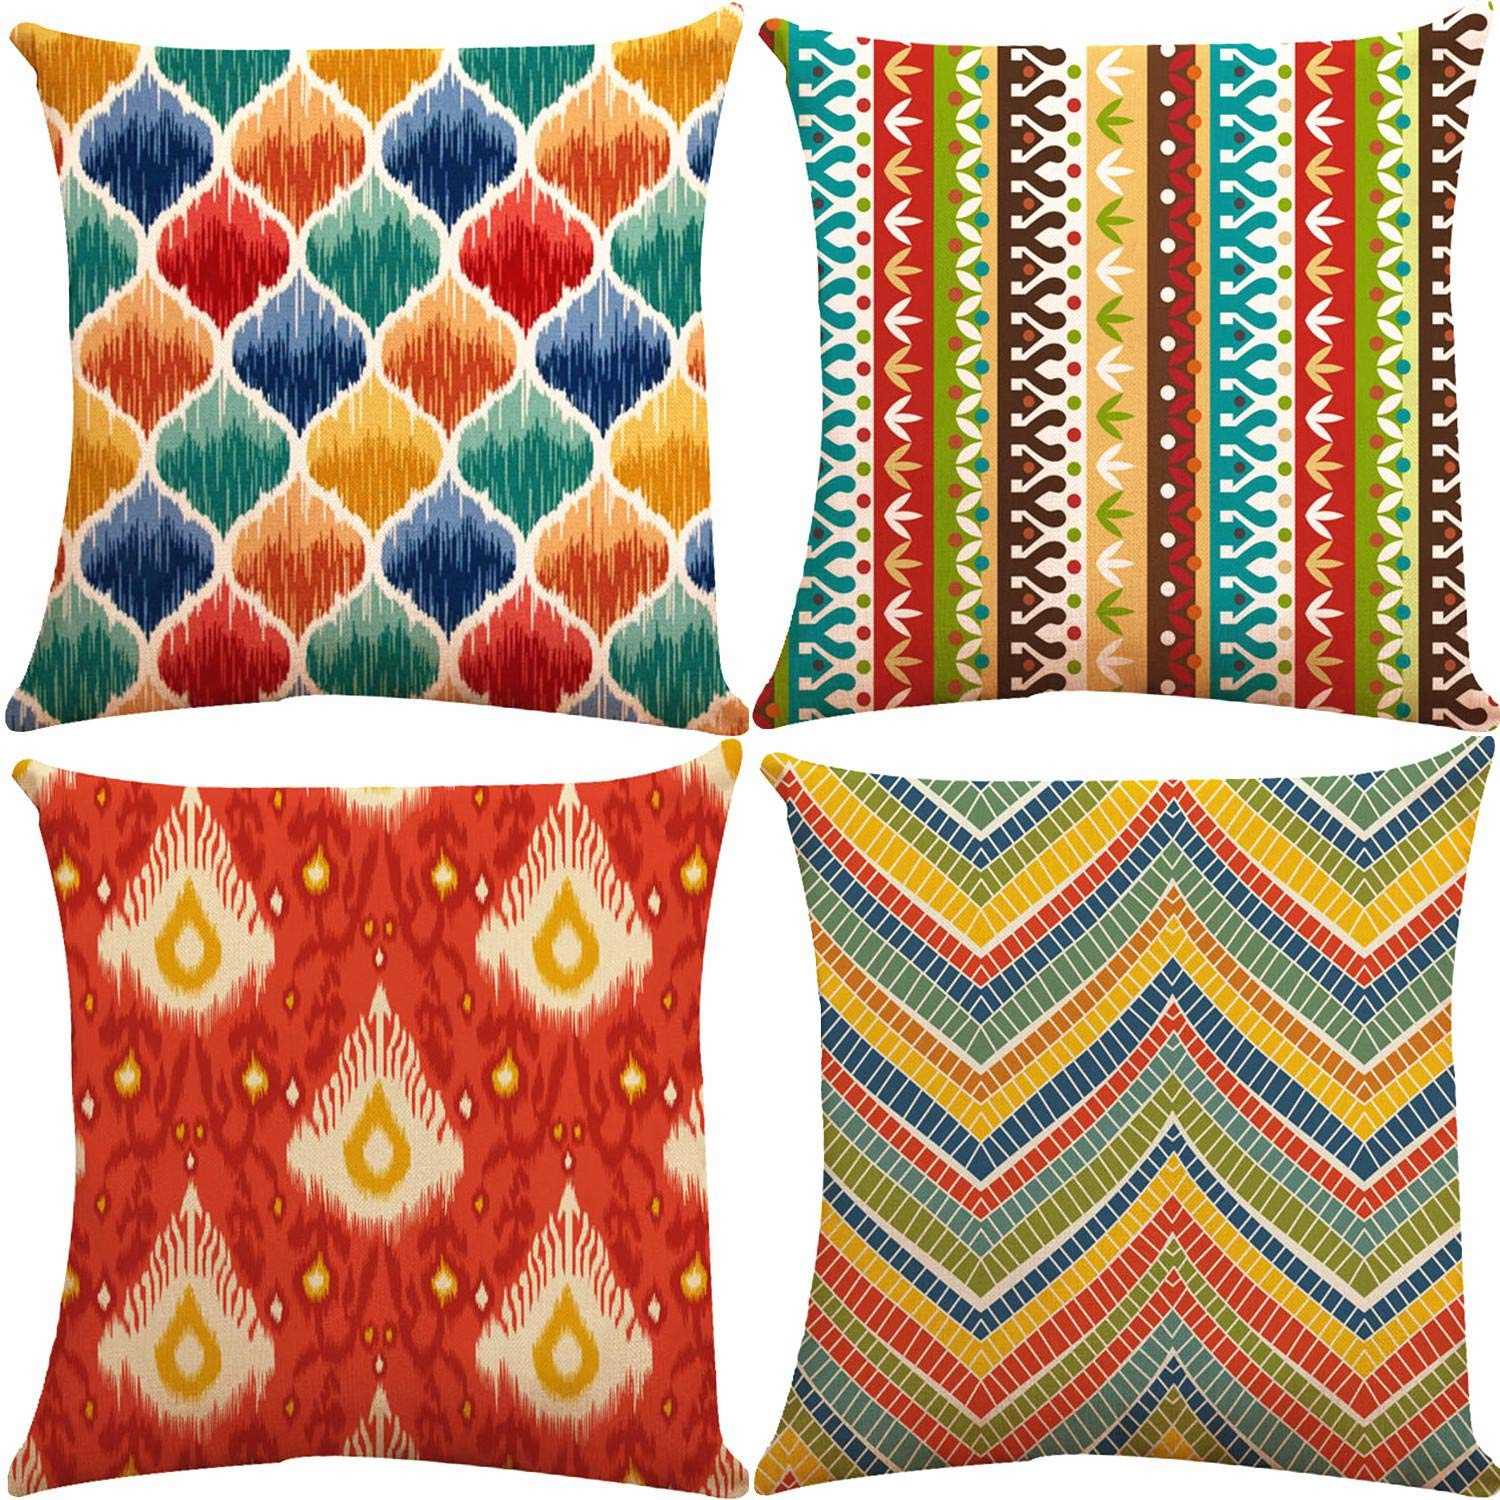 ZUEXT Outdoor Cotton Linen Throw Pillow Covers 18x18 Inch Set of 4, 2 Side Print Square Decorative Pillowcase for Car Couch Sofa Home Decor (Orange Red Blue Aqua Modern World Traveller Fiesta Mexico)